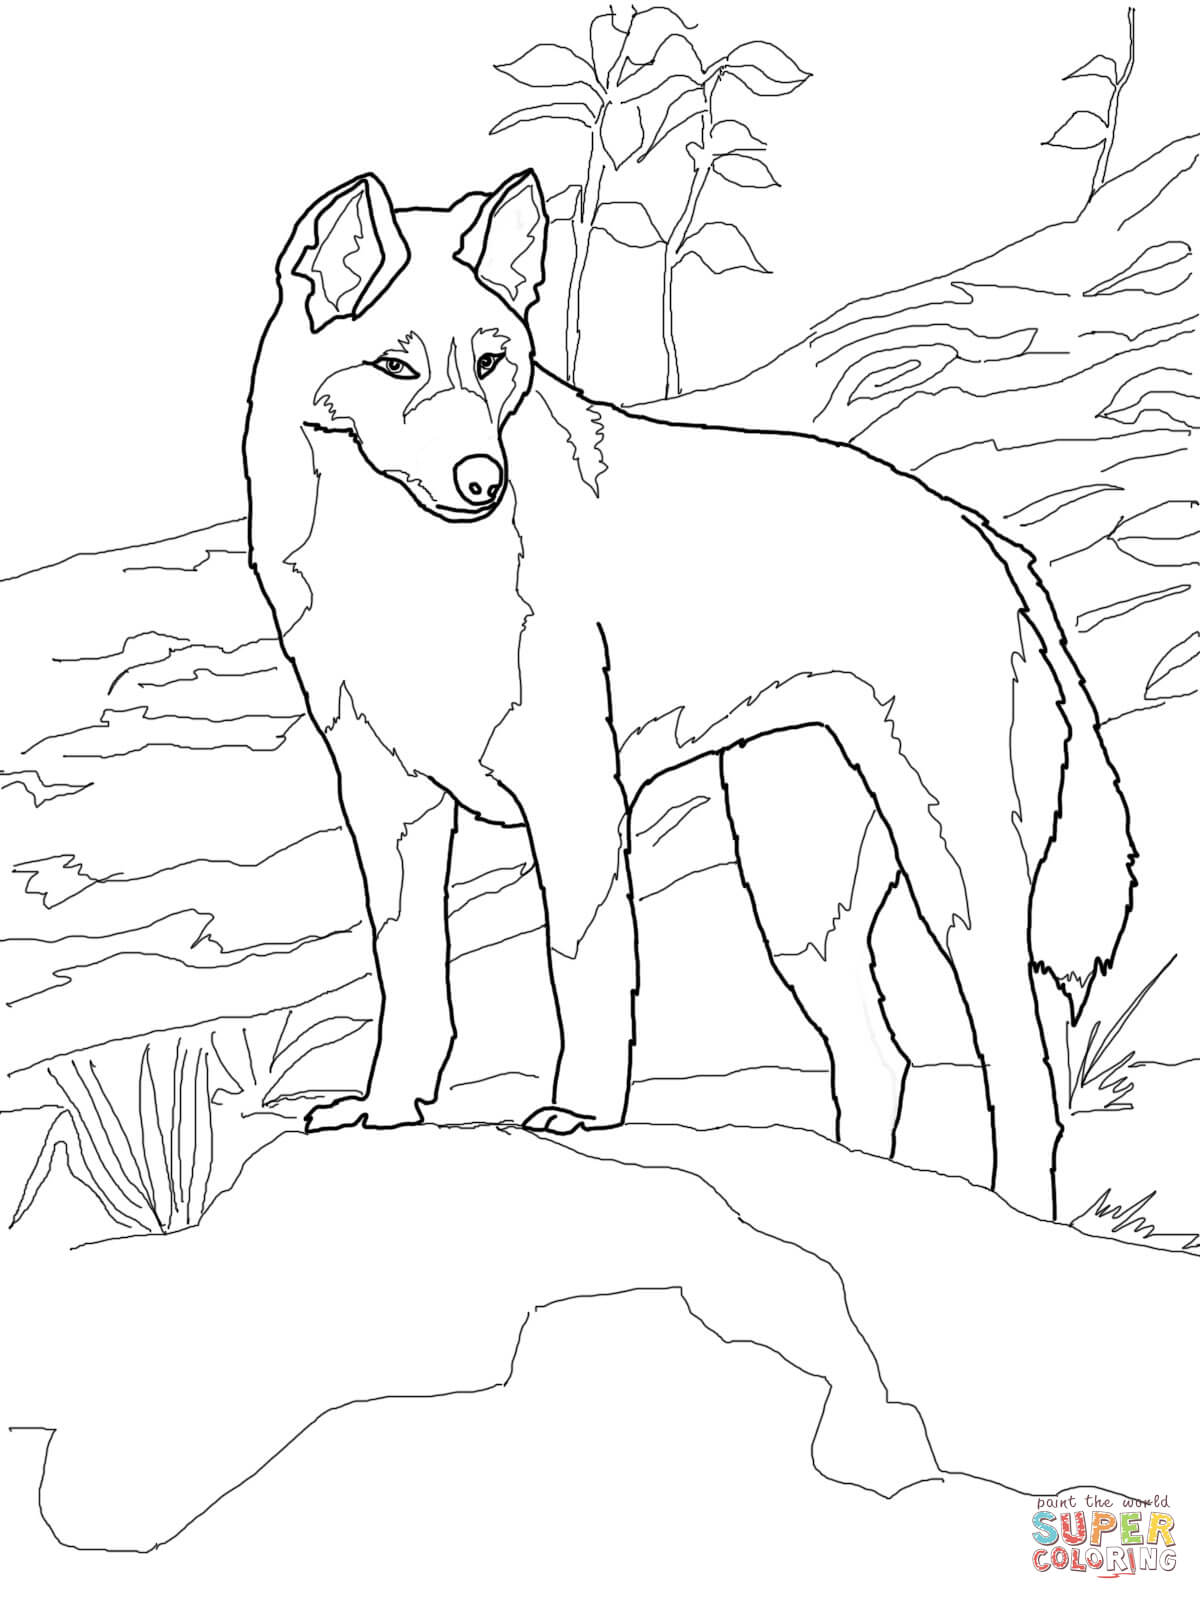 dingo from australia coloring page free printable coloring pages